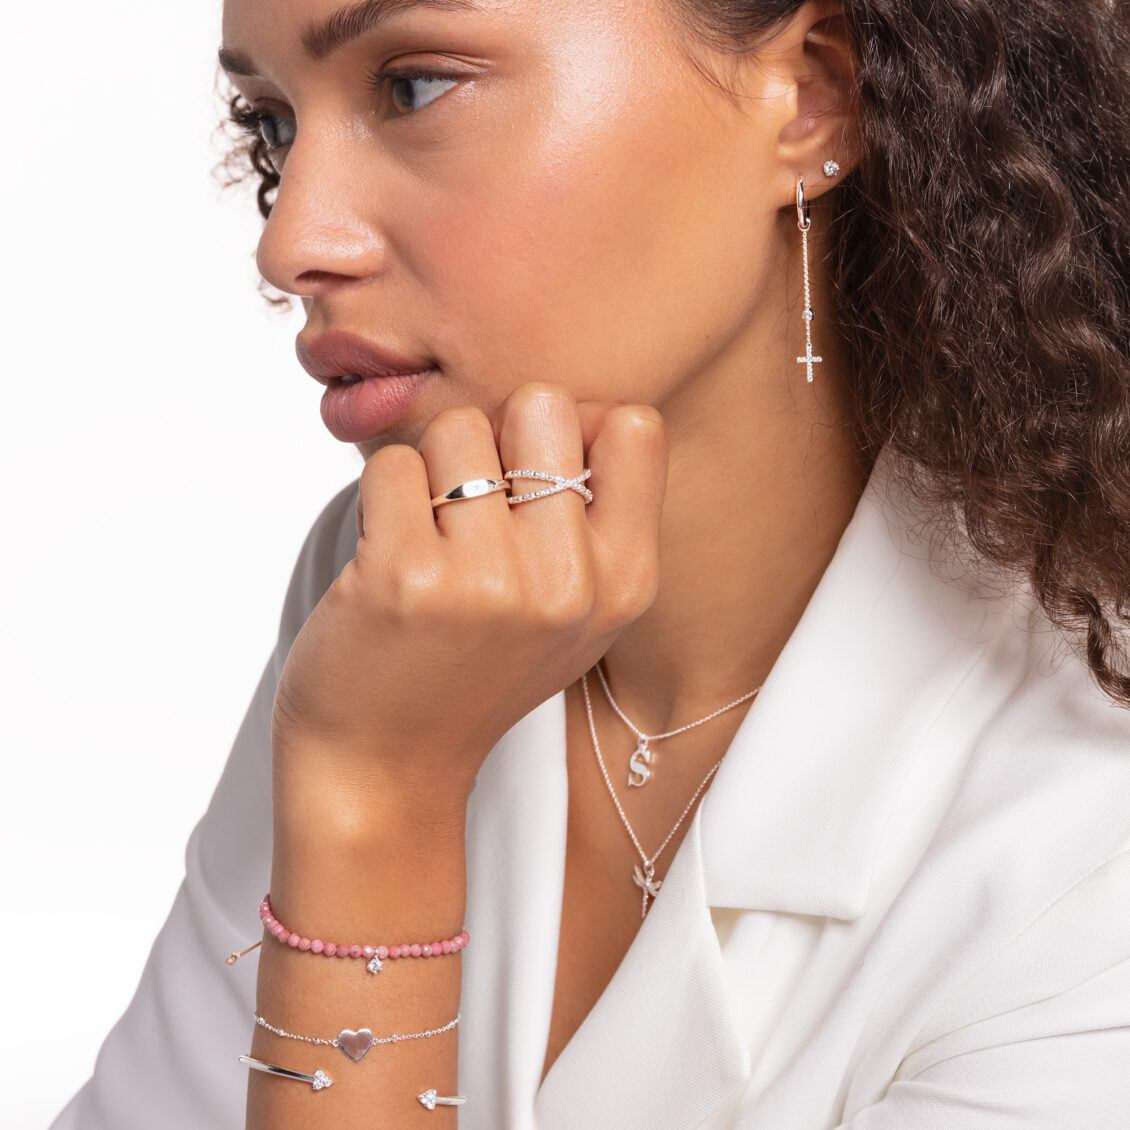 THOMAS SABO presents the new Charming Collection 7